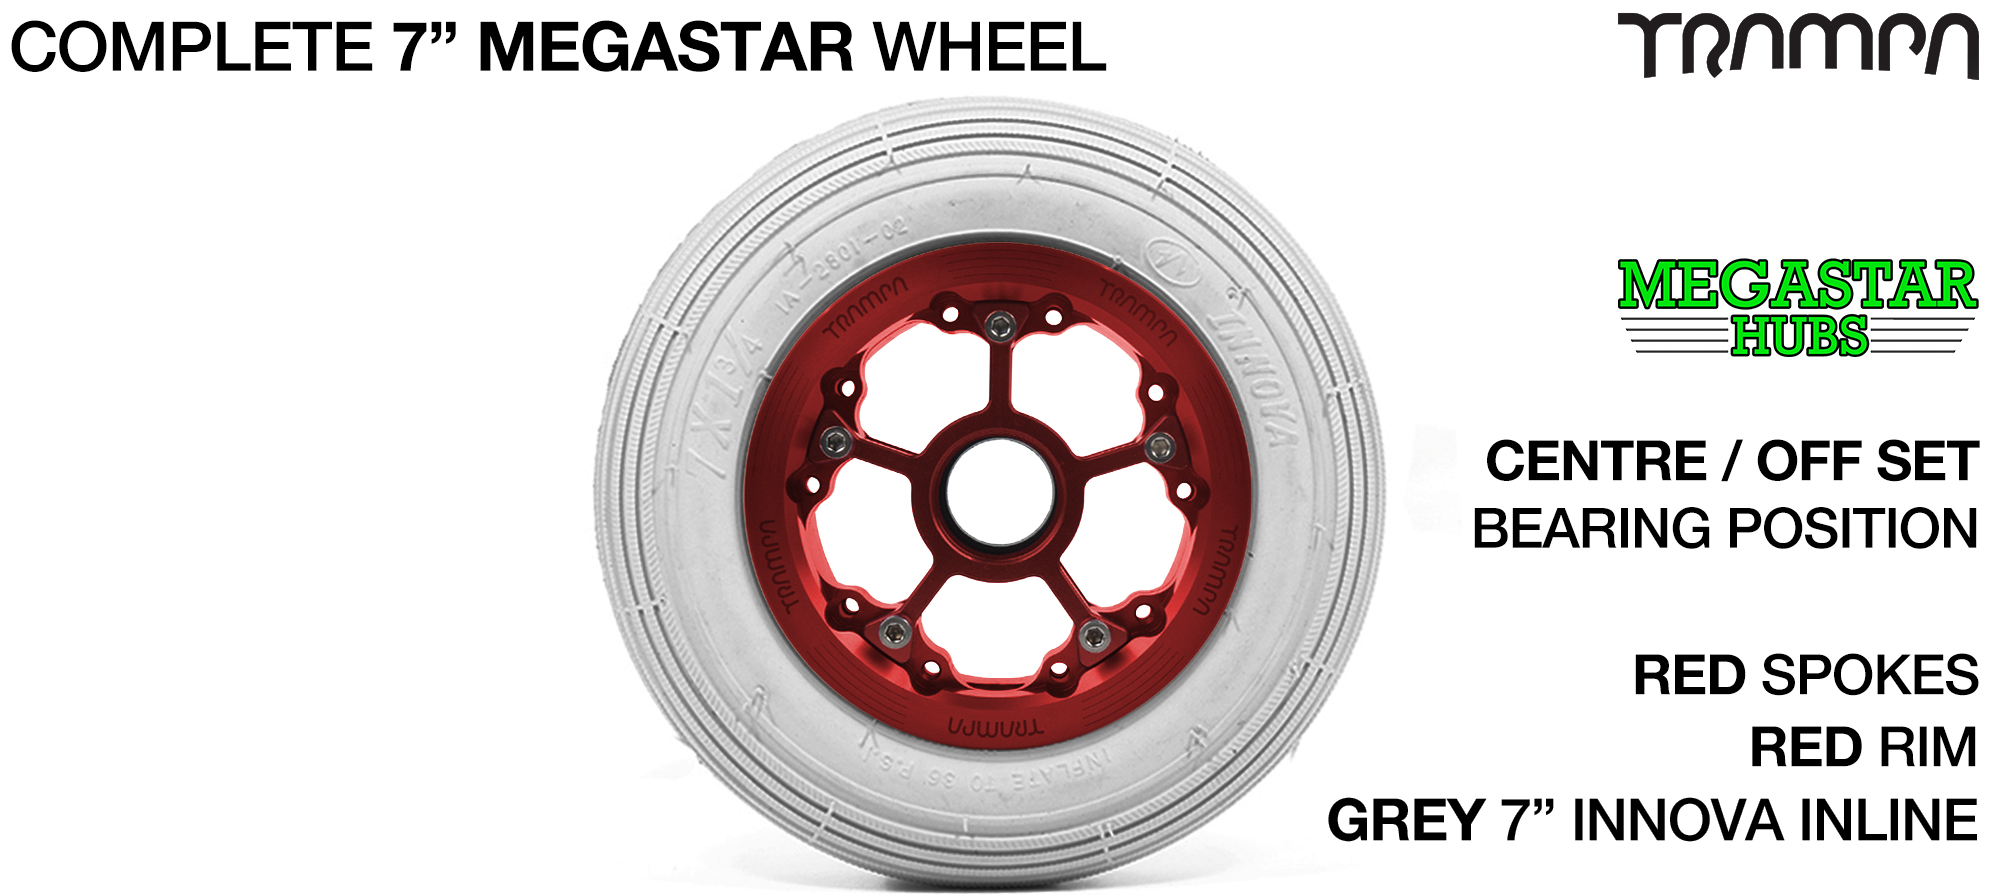 RED MEGASTAR Rims with RED Spokes & 7 Inch Tyres